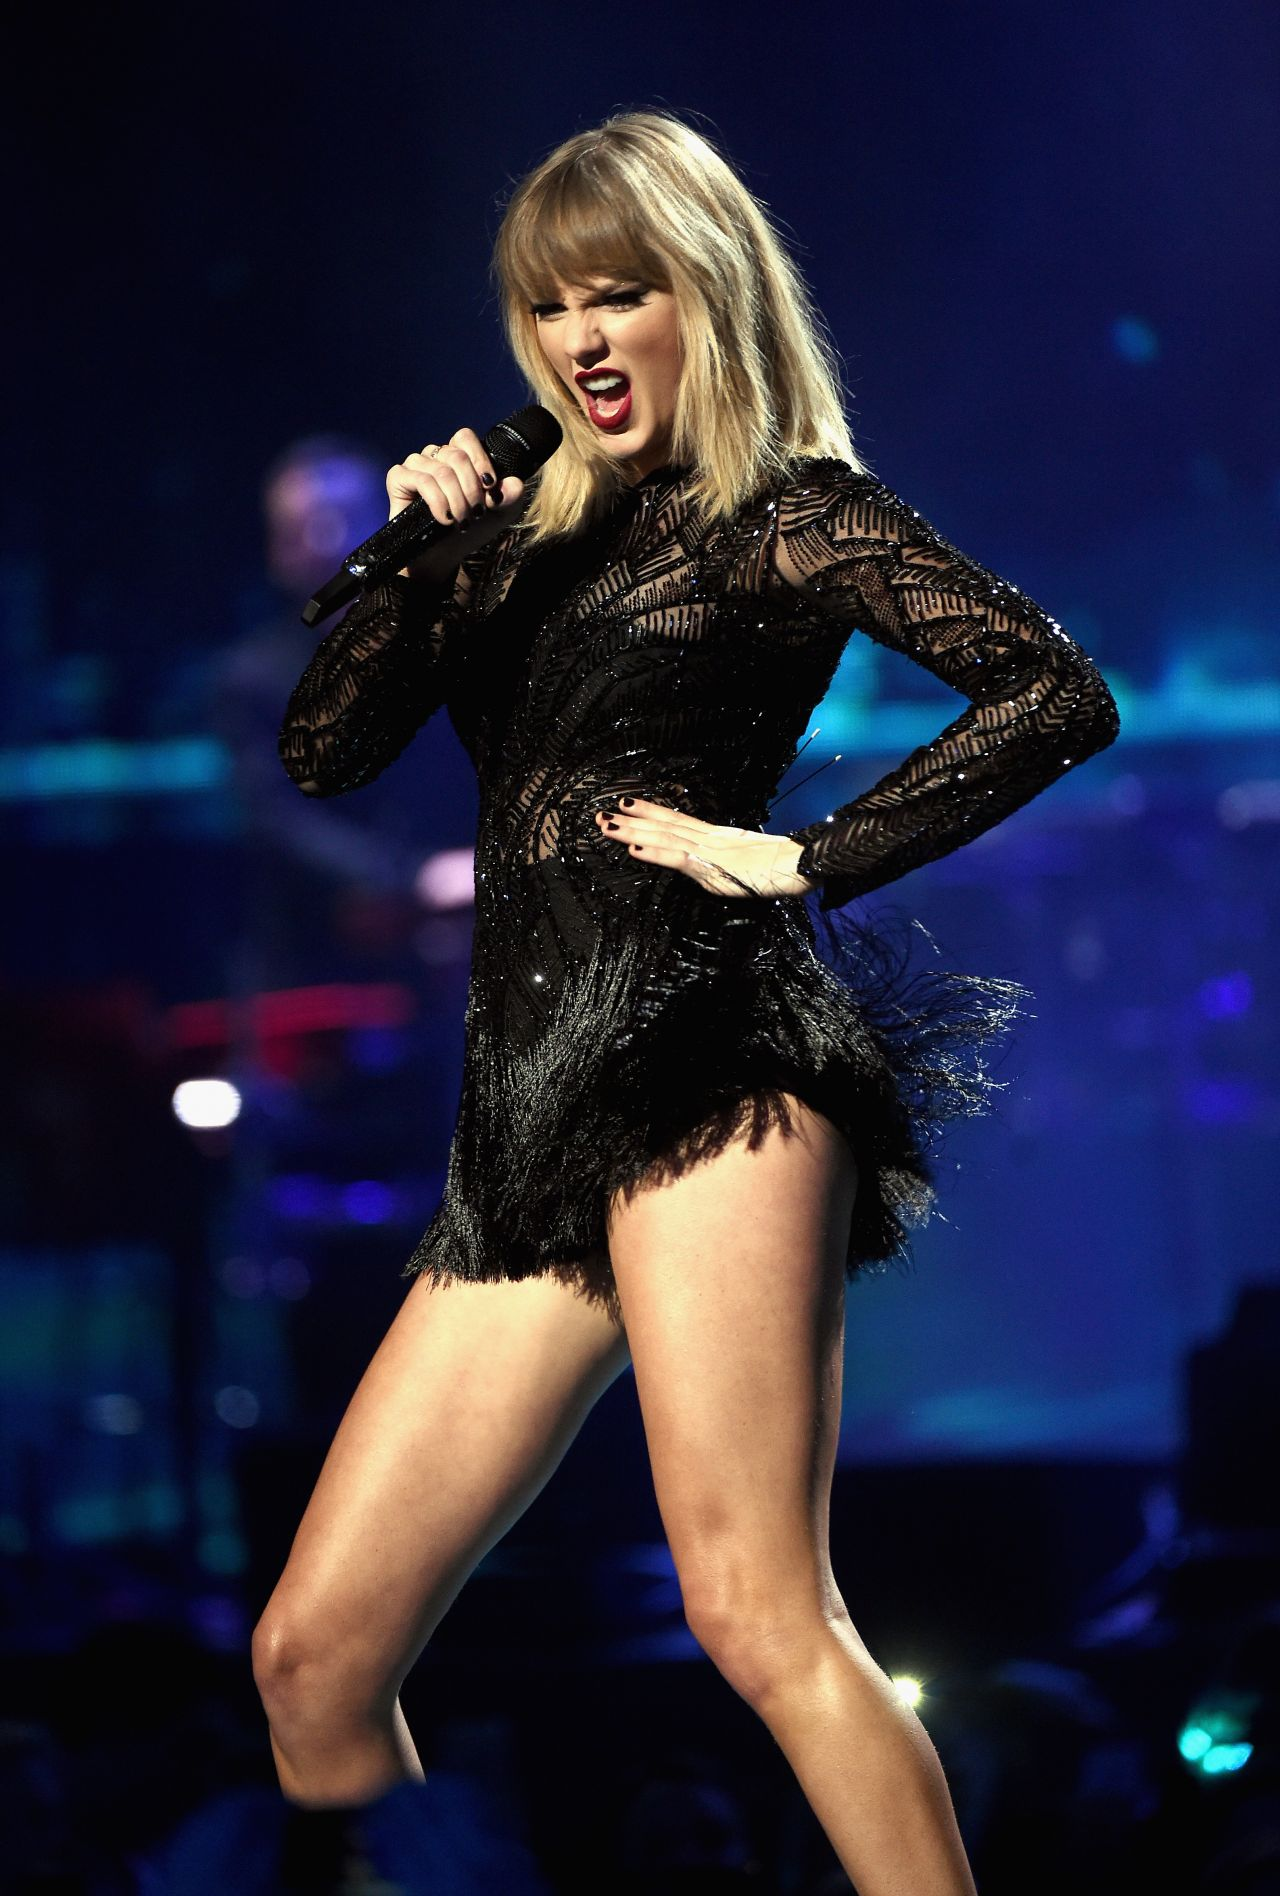 taylor-swift-2017-directv-now-super-saturday-night-concert-in-houston-2-4-2017-1.jpg